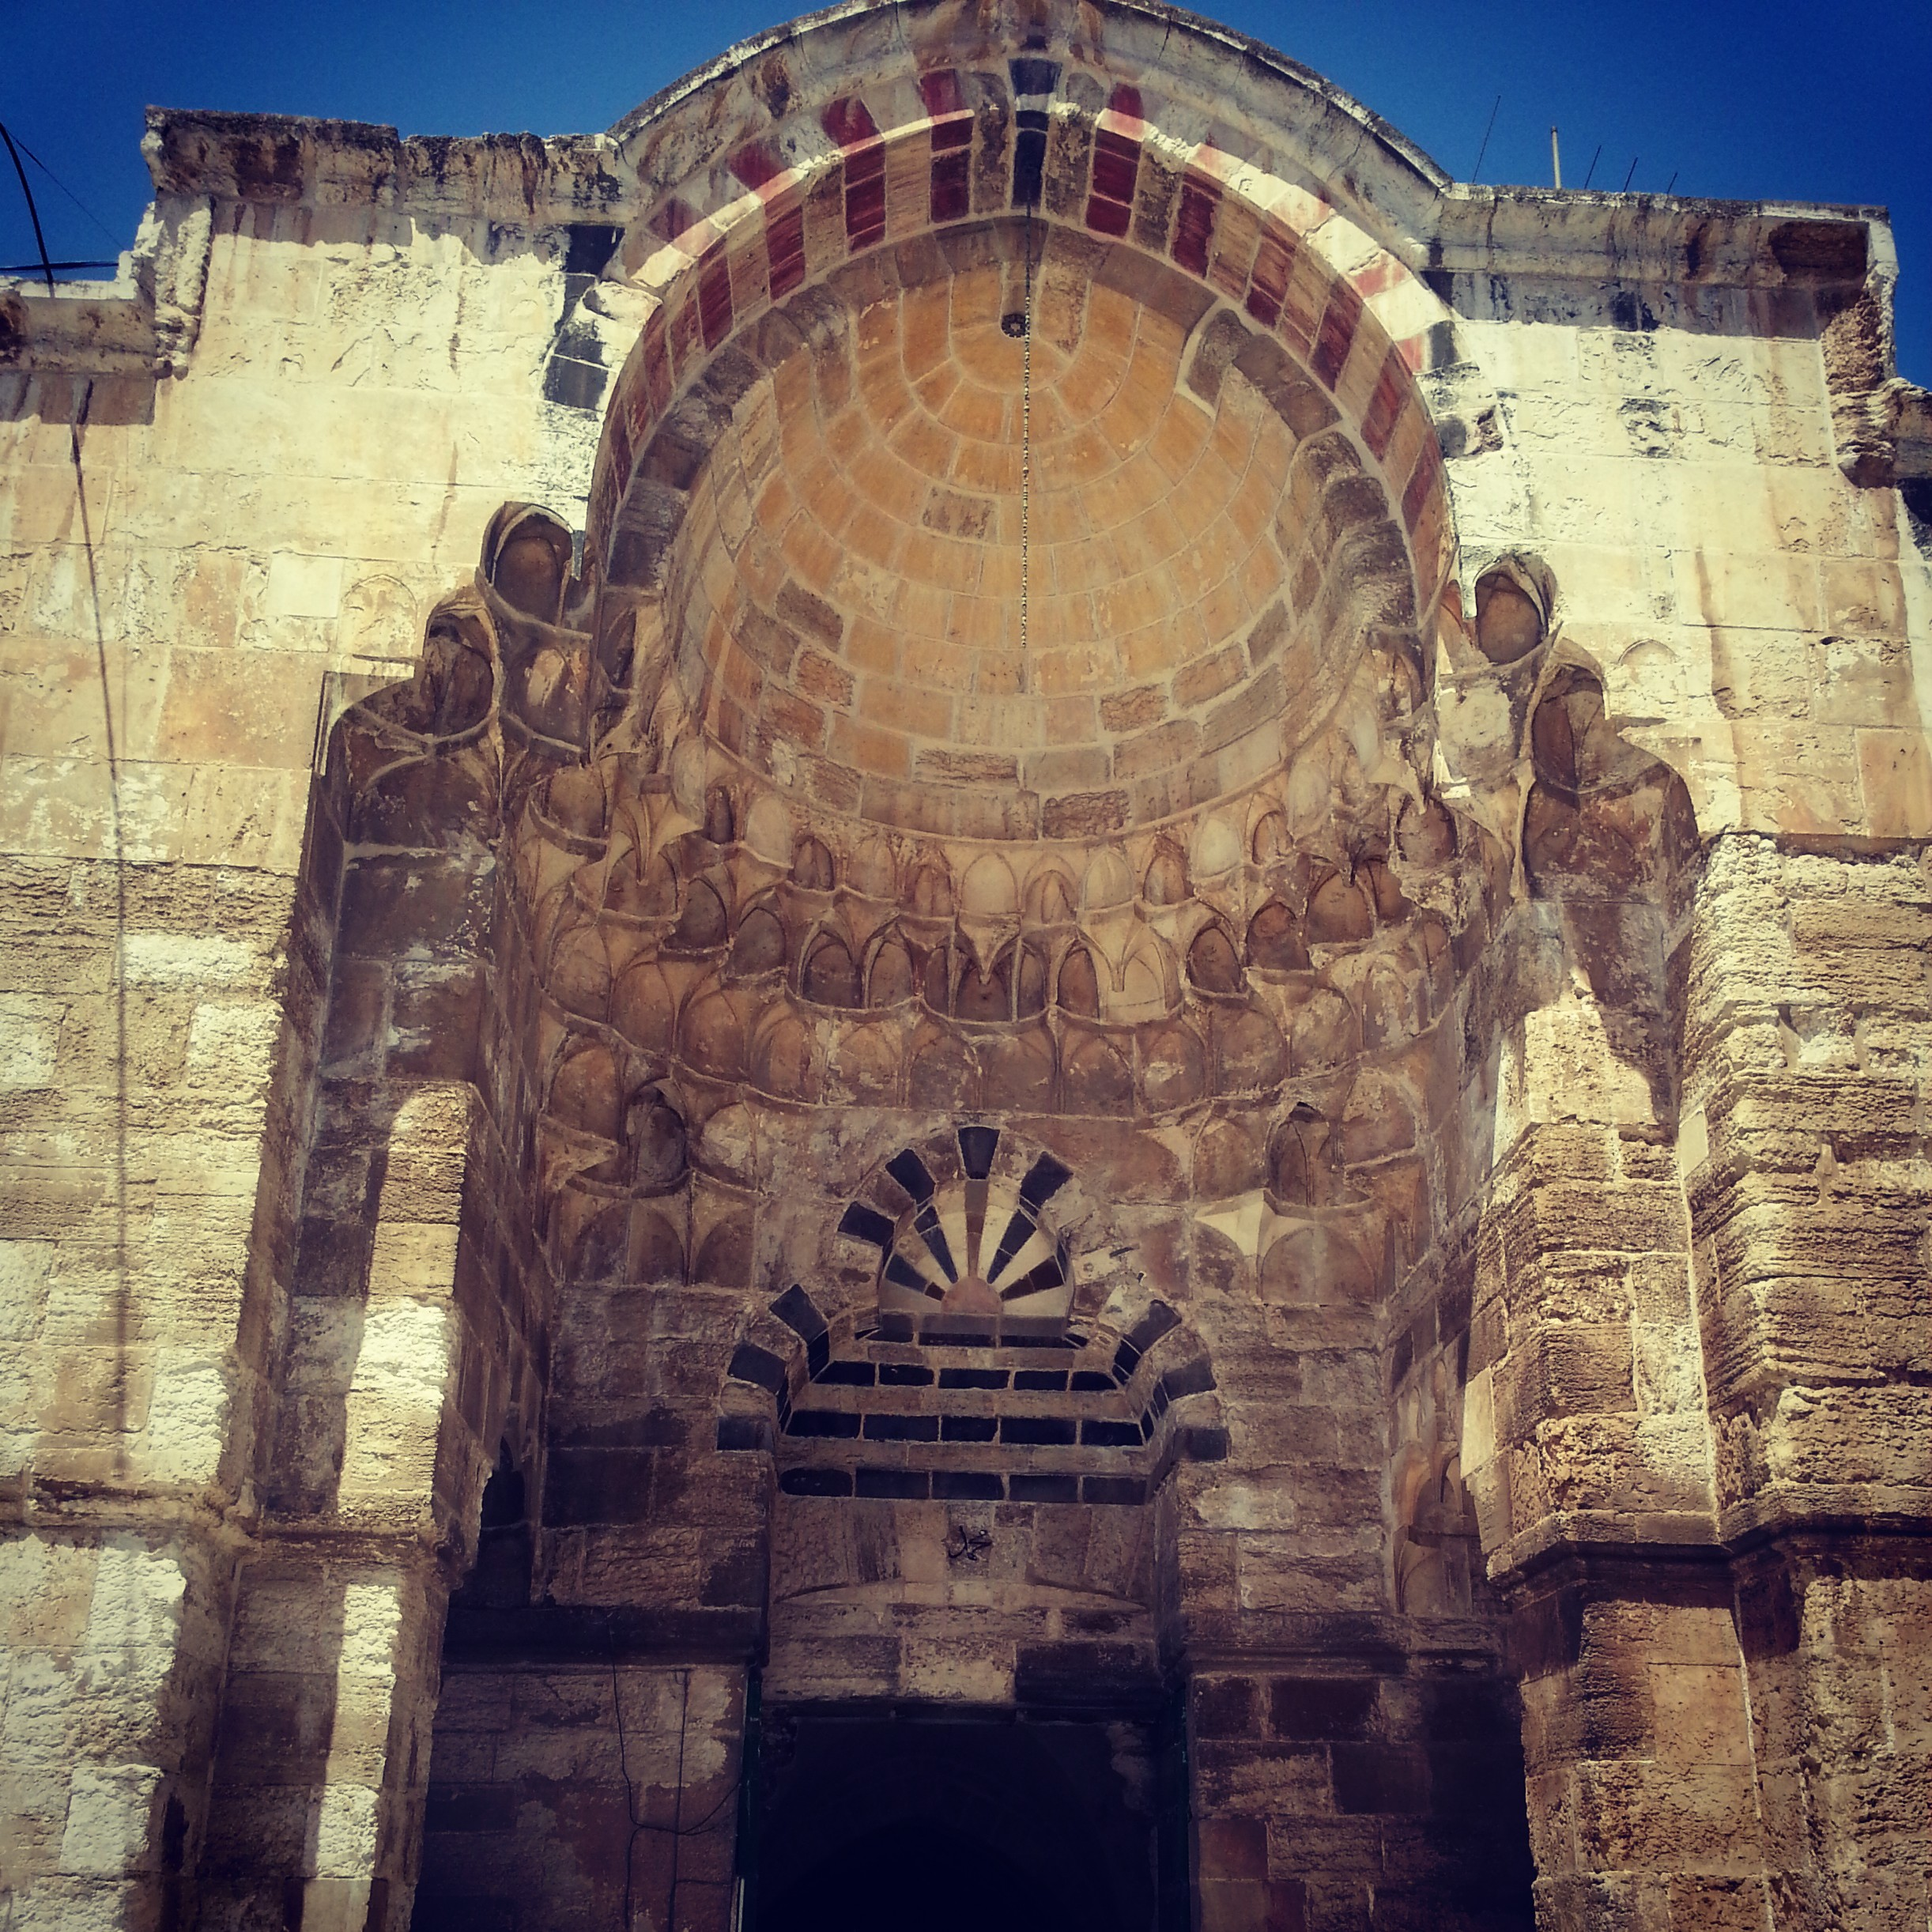 Mamluk architecture: note the alternating dark and light stone in the ablaq style